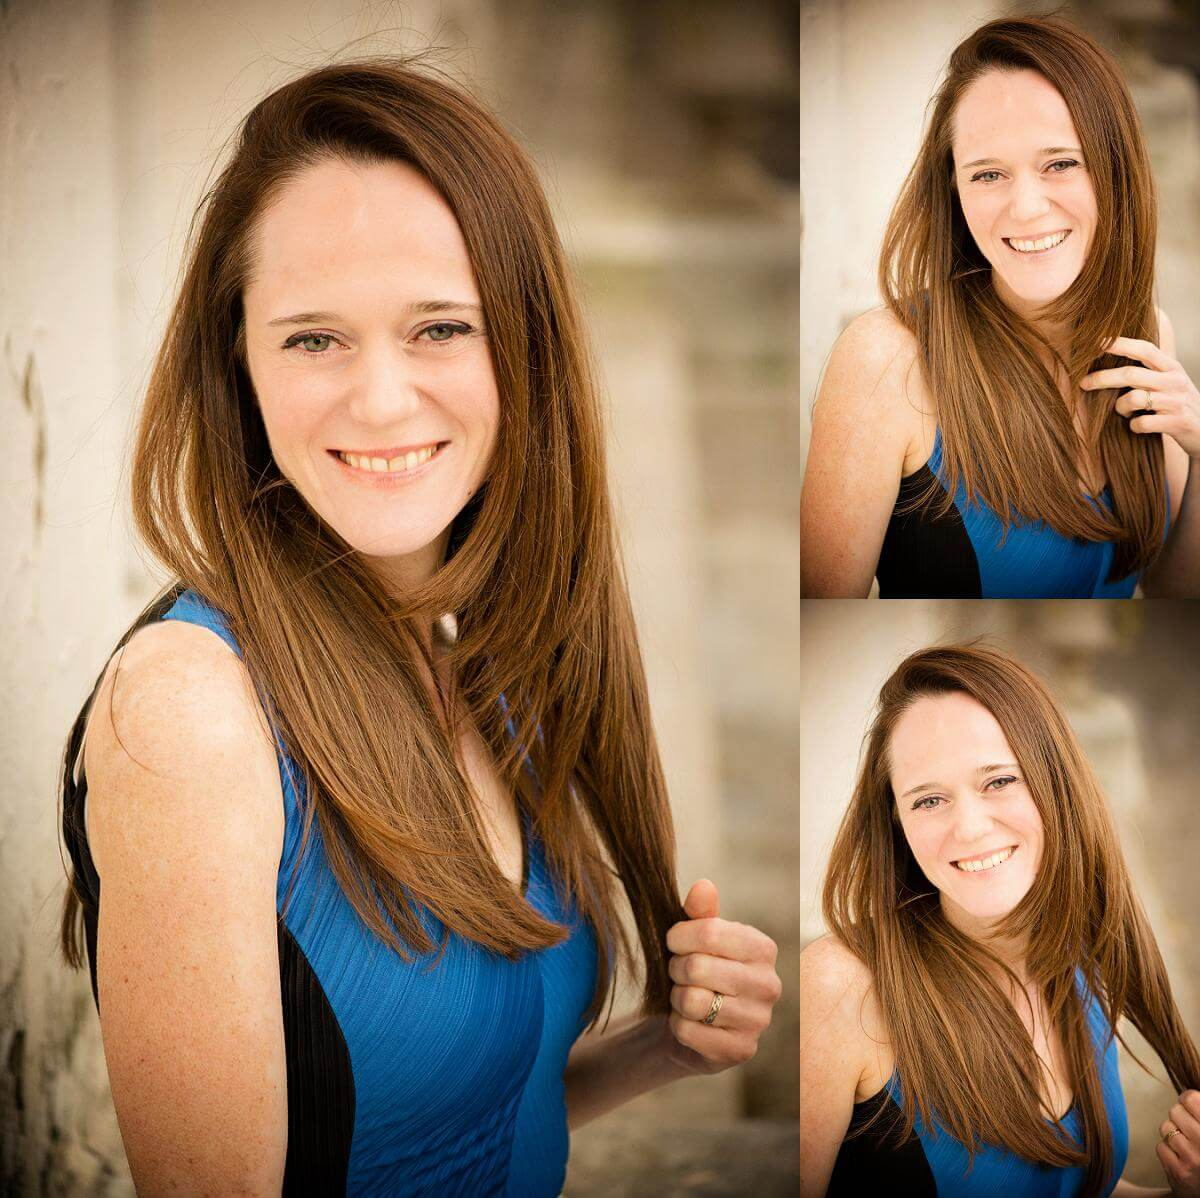 outdoor headshot session